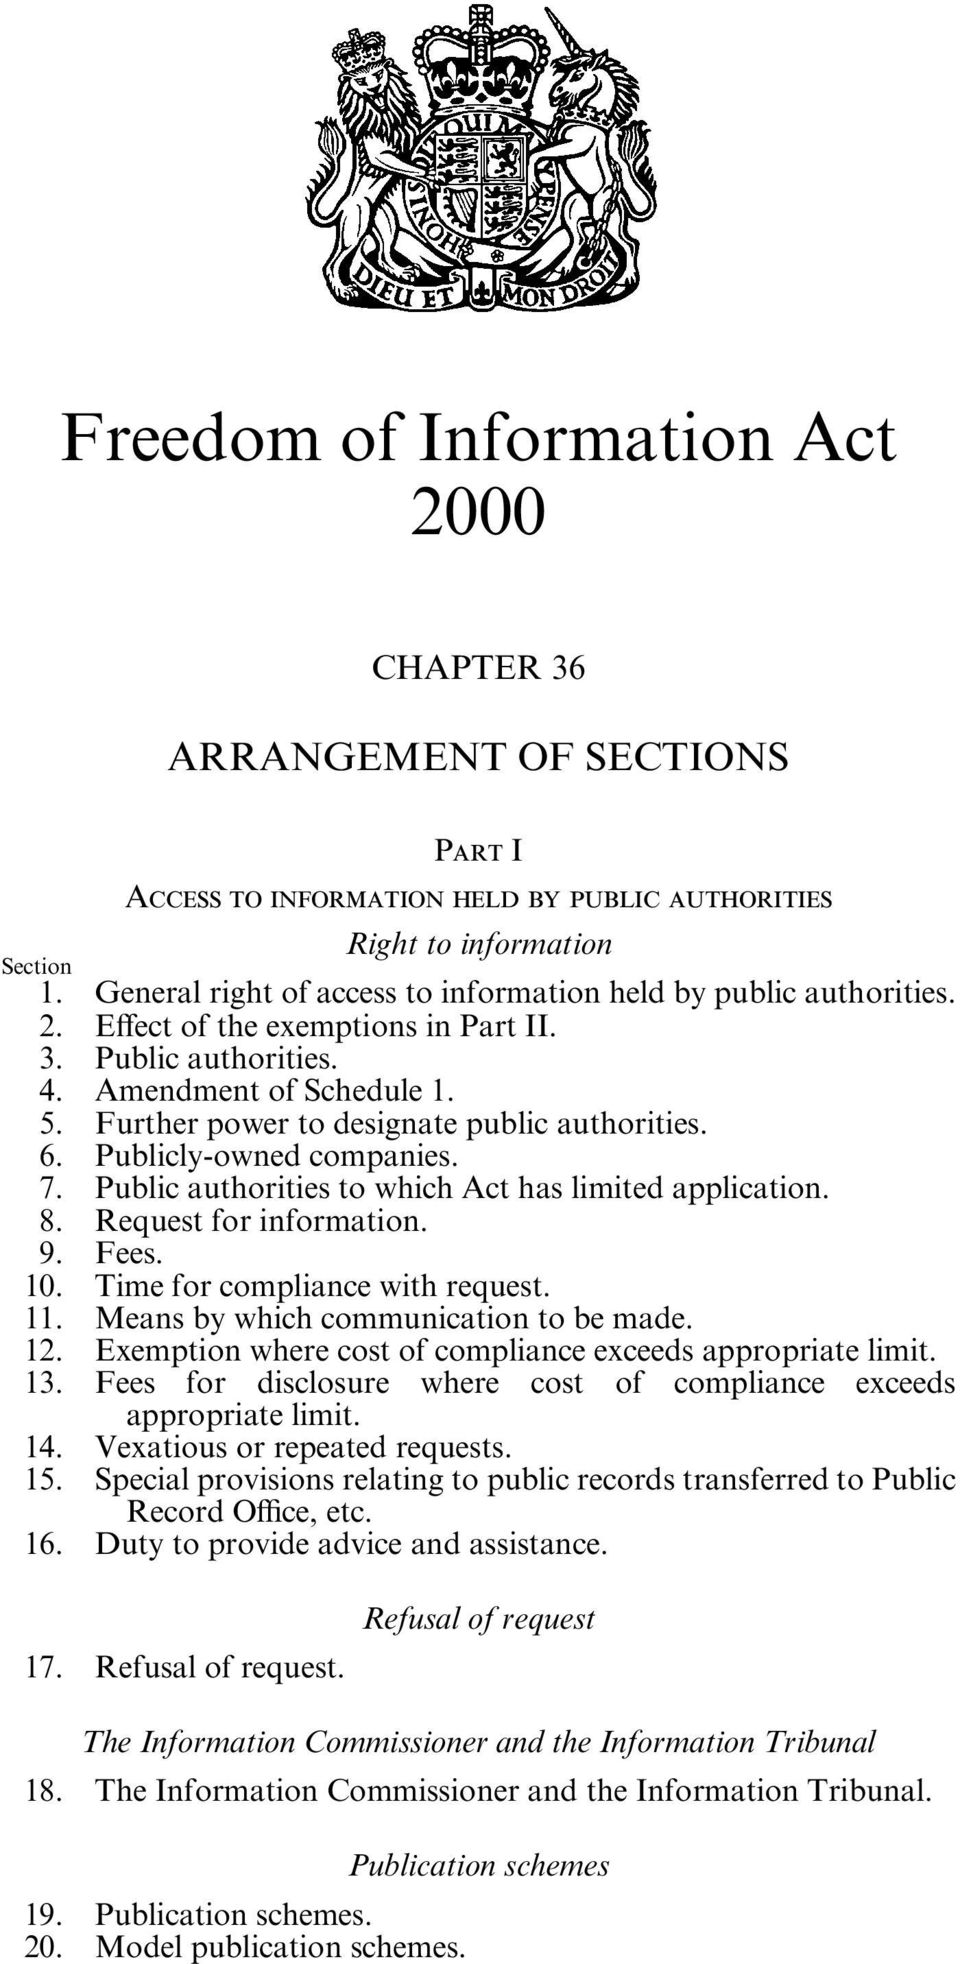 General right of access to information held by public authorities. 2. Effect of the exemptions in Part II. 3. Public authorities. 4. Amendment of Schedule 1. 5.